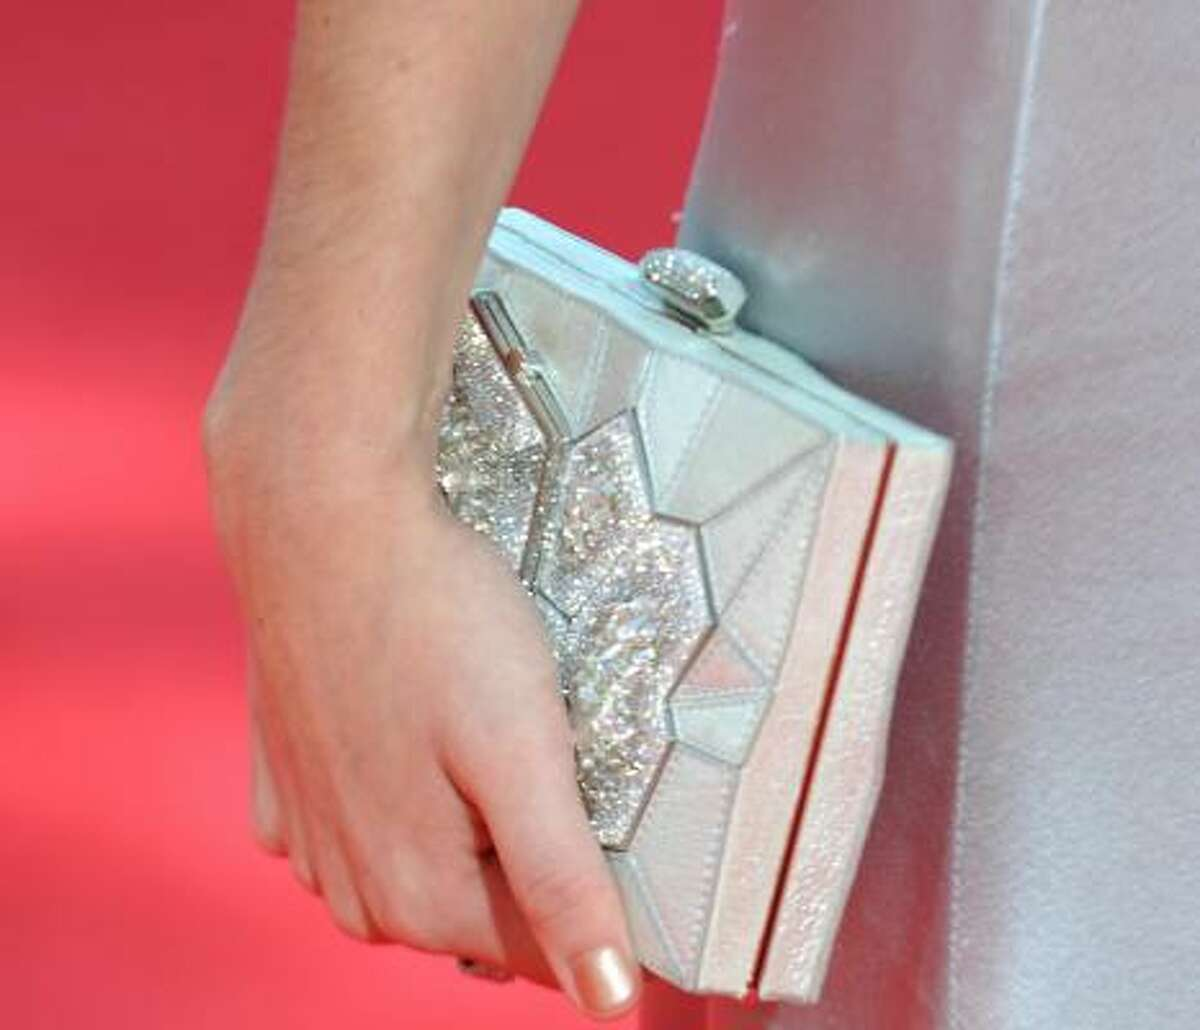 Sarah Hyland's vintage-looking purse.